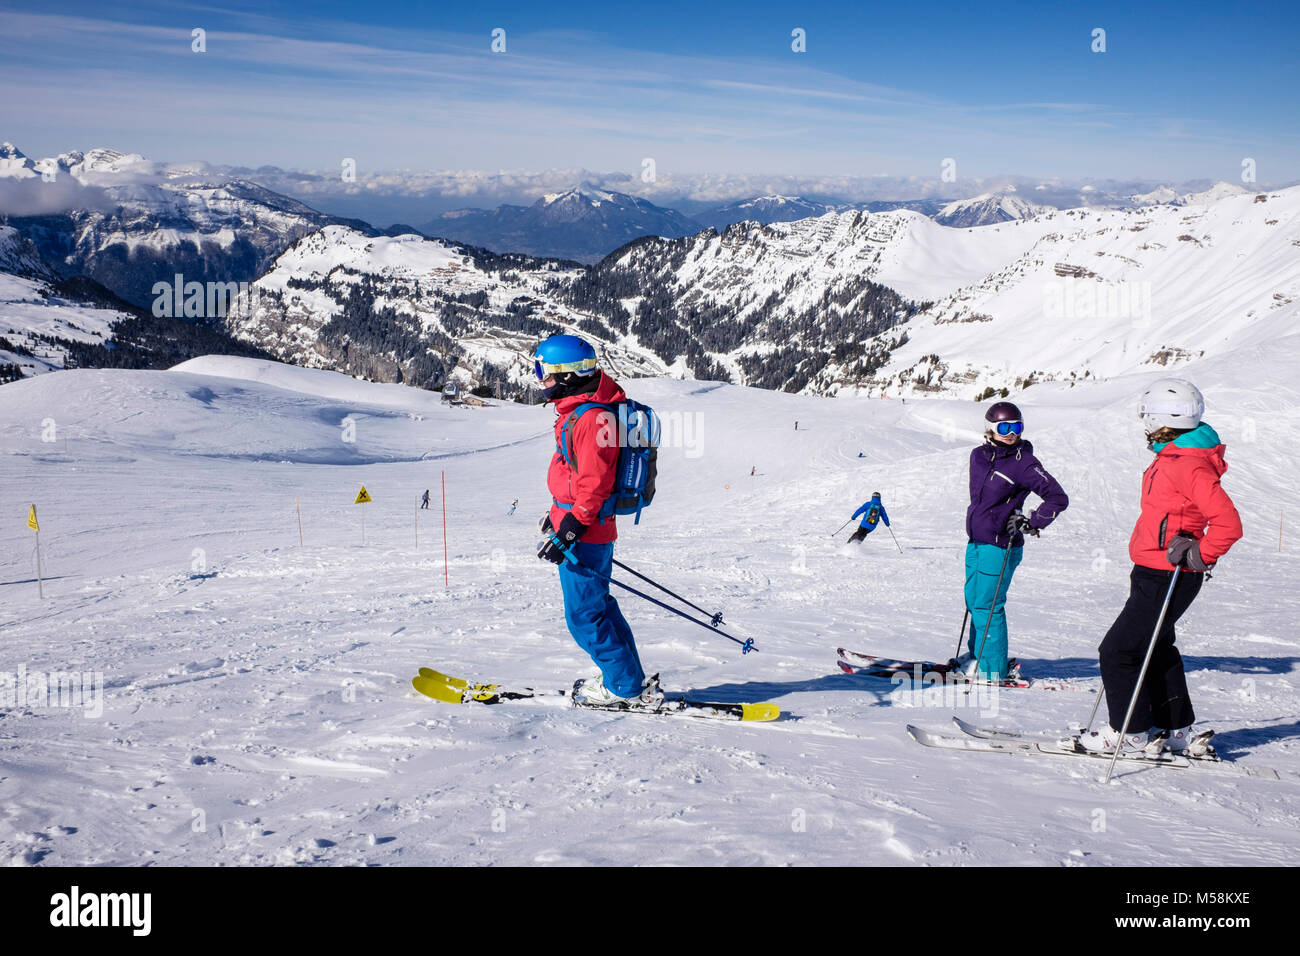 Skiers skiing on red route ski slope in le Grand Massif ski area in French Alps in winter snow above Flaine, Haute - Stock Image